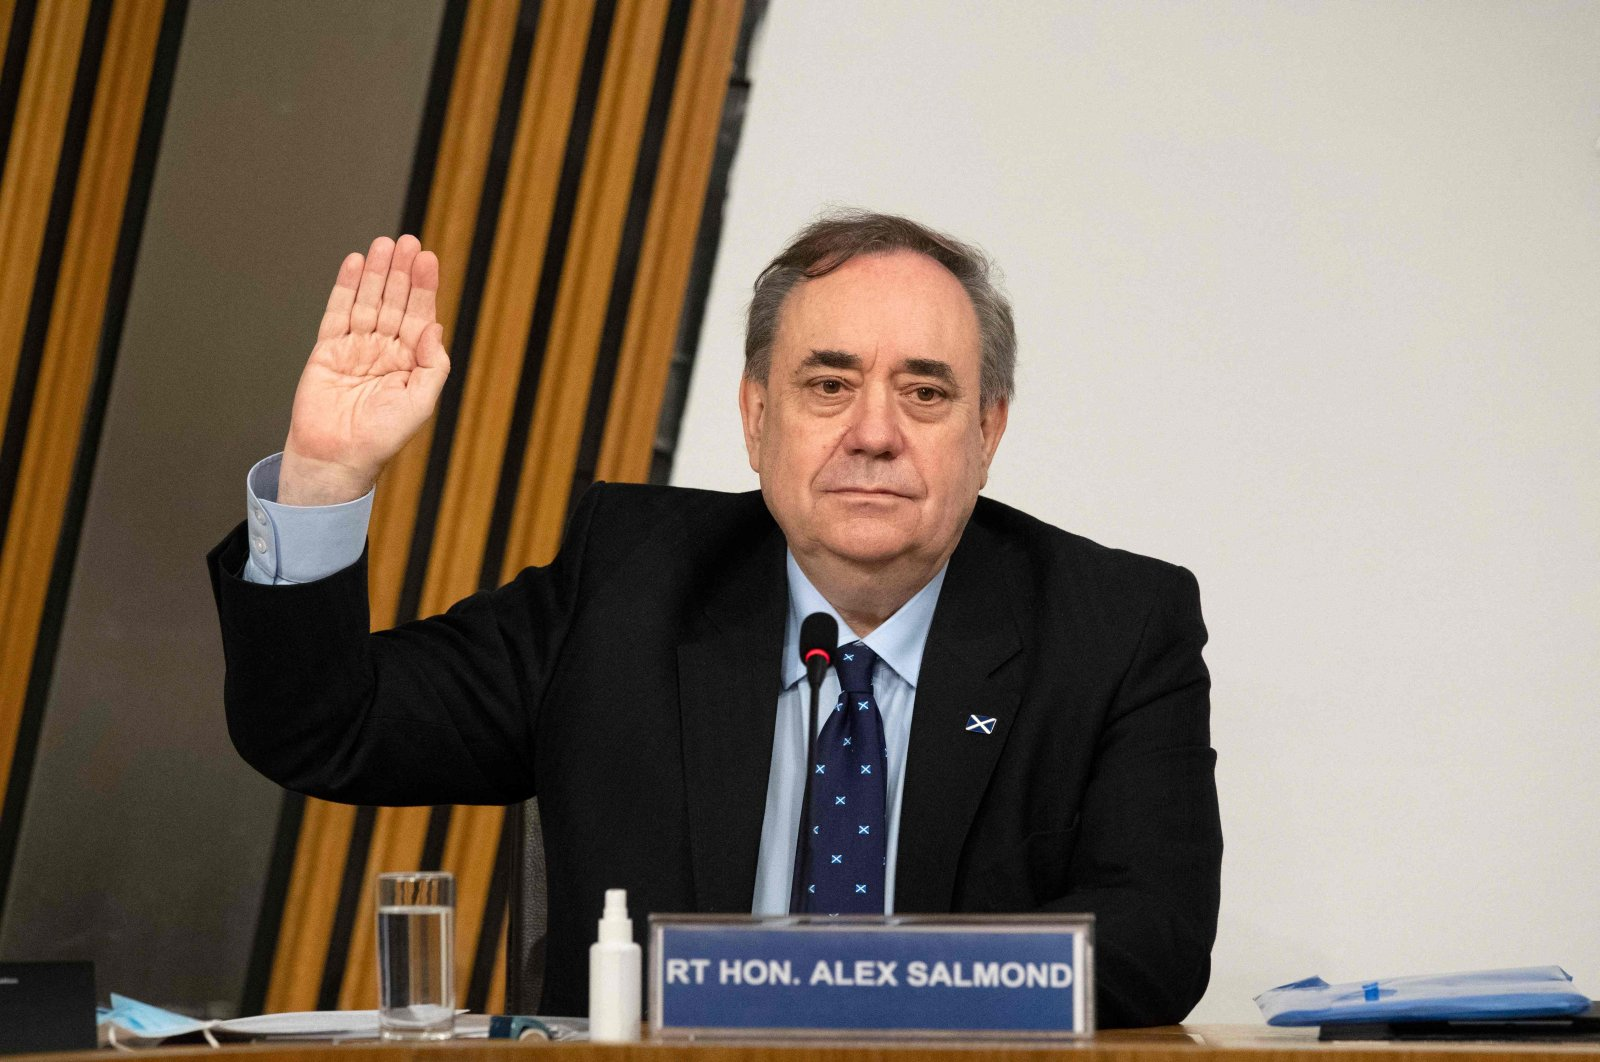 The former Scottish National Party leader and former first minister of Scotland, Alex Salmond, is sworn in before giving evidence to The Committee on the Scottish Government Handling of Harassment Complaints examining the government's handling of harassment allegations against him at Holyrood in Edinburgh, Scottland, Feb. 26, 2021. (AFP)